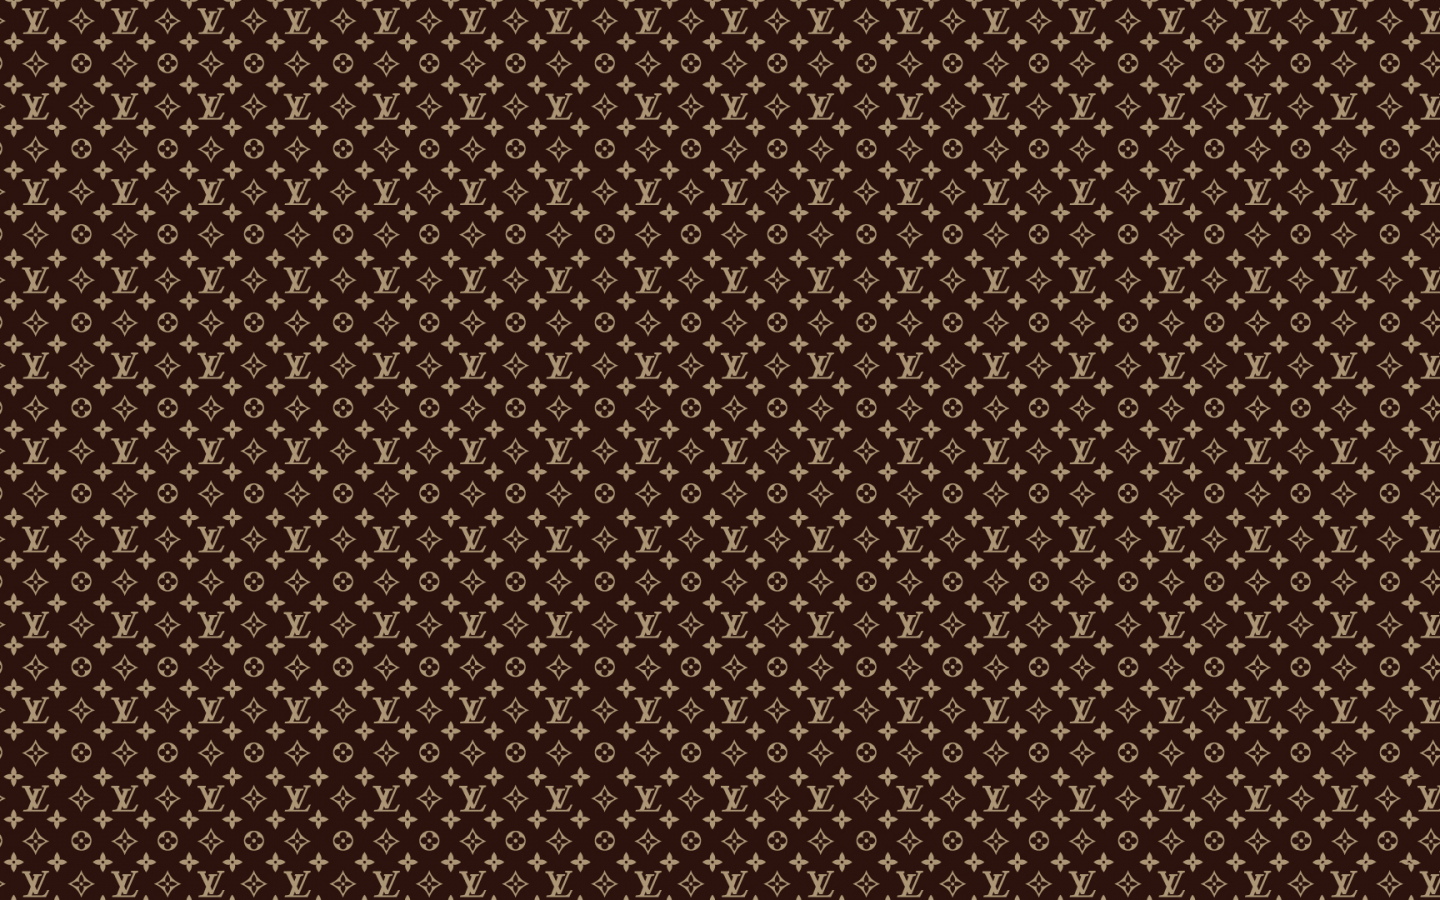 Free Download Louis Vuitton Wallpapers Hd 1920x1080 For